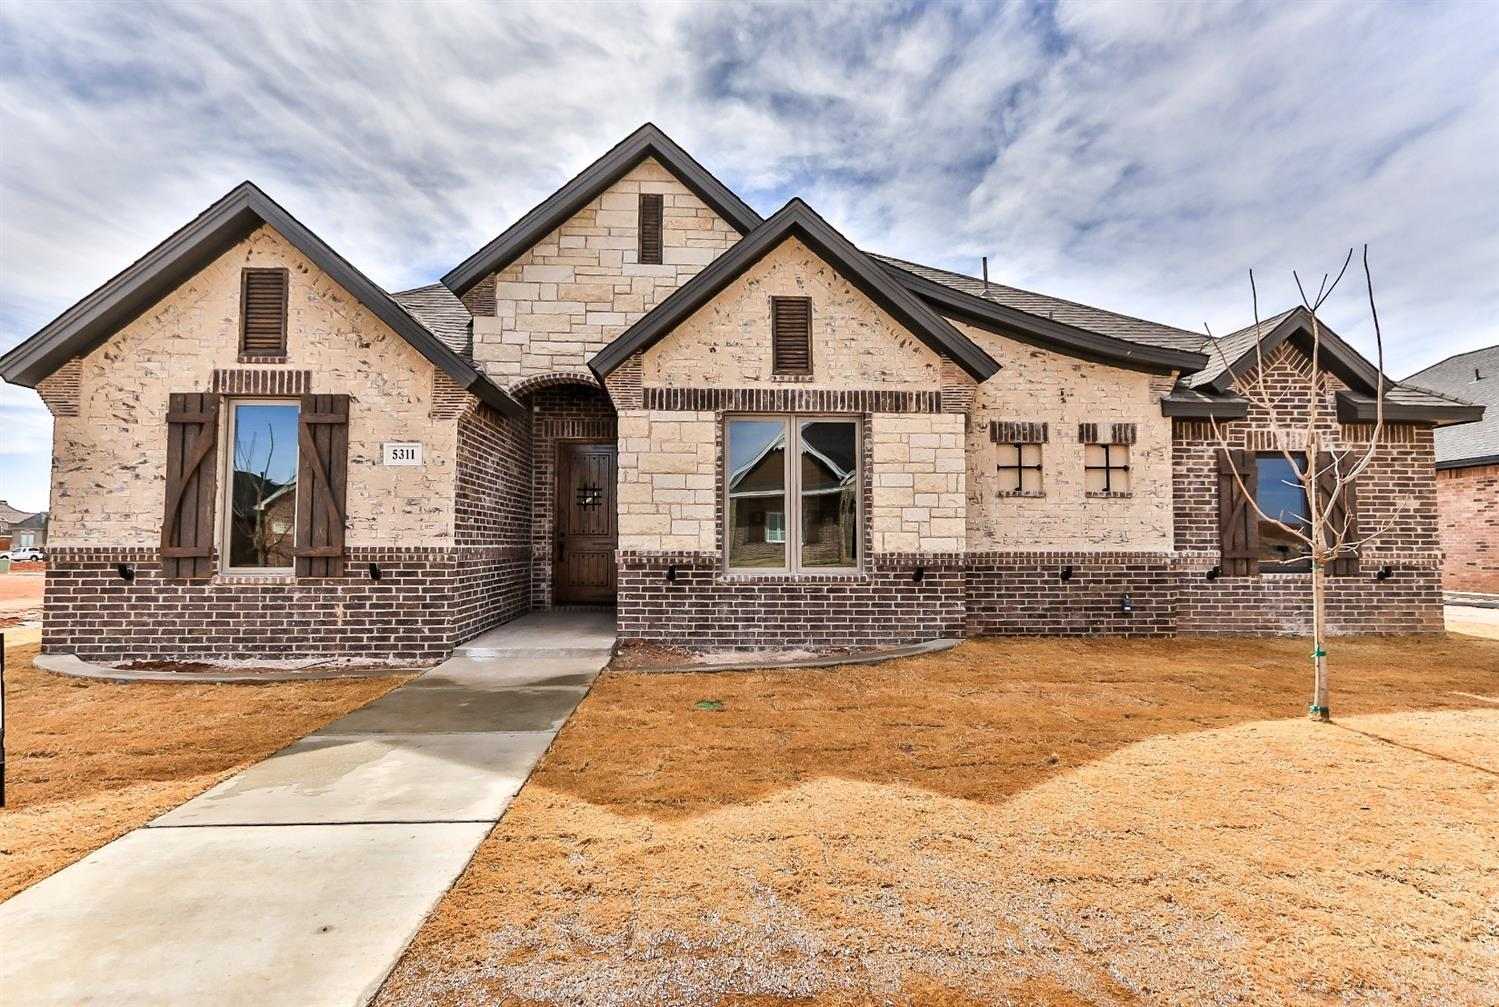 Quality construction and craftsmanship in this new home by HWH Builders. Open concept with breathtaking groin vaulted entry and soaring ceilings throughout. Kitchen features granite counters, large central island, gas stove and large pantry. Master has enormous walk in closet, double vanities, beautiful tile work and large shower.